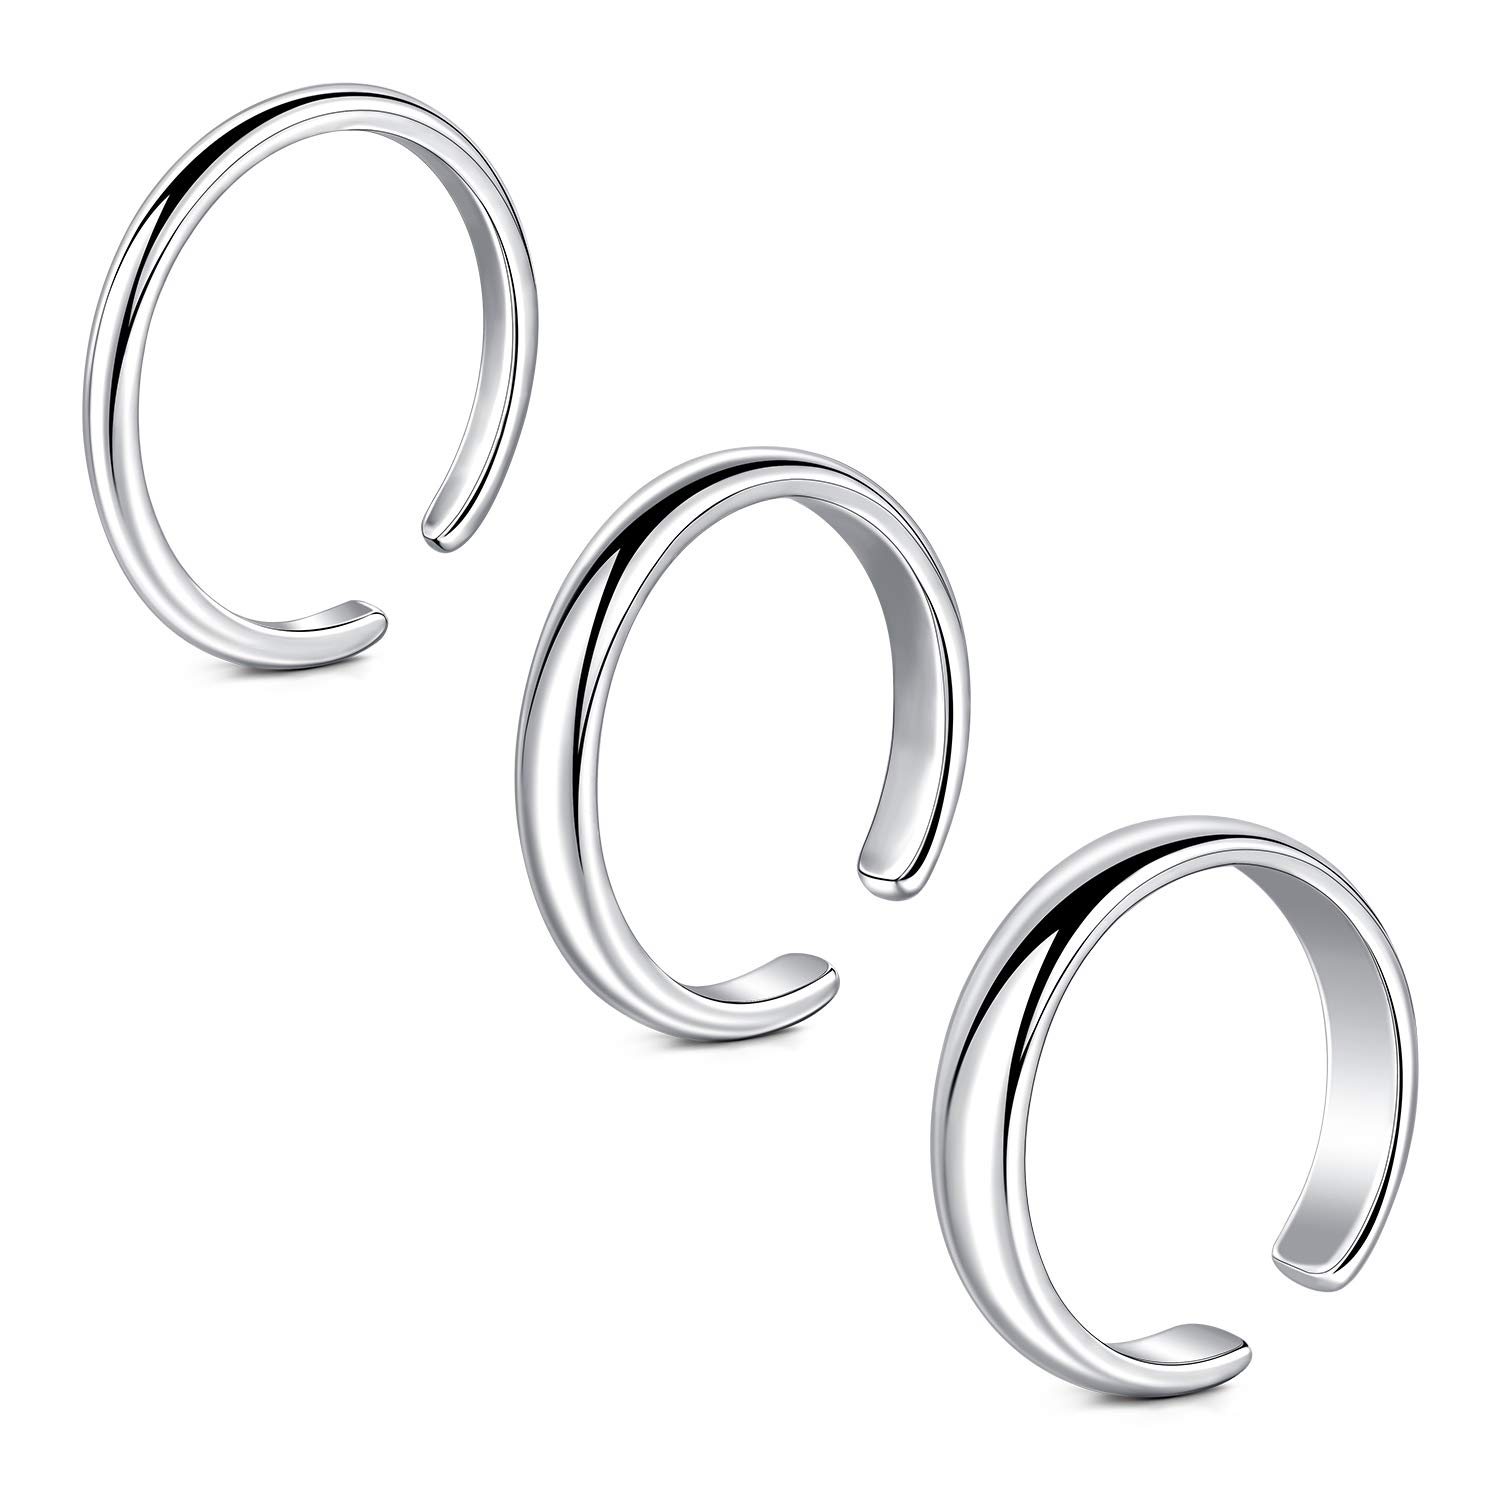 Longita Adjustable Toe Rings Silver for Women Simple Open Band Fingers Joint Knuckle Tail Ring Hypoallergenic Sandals Foot Jewelry